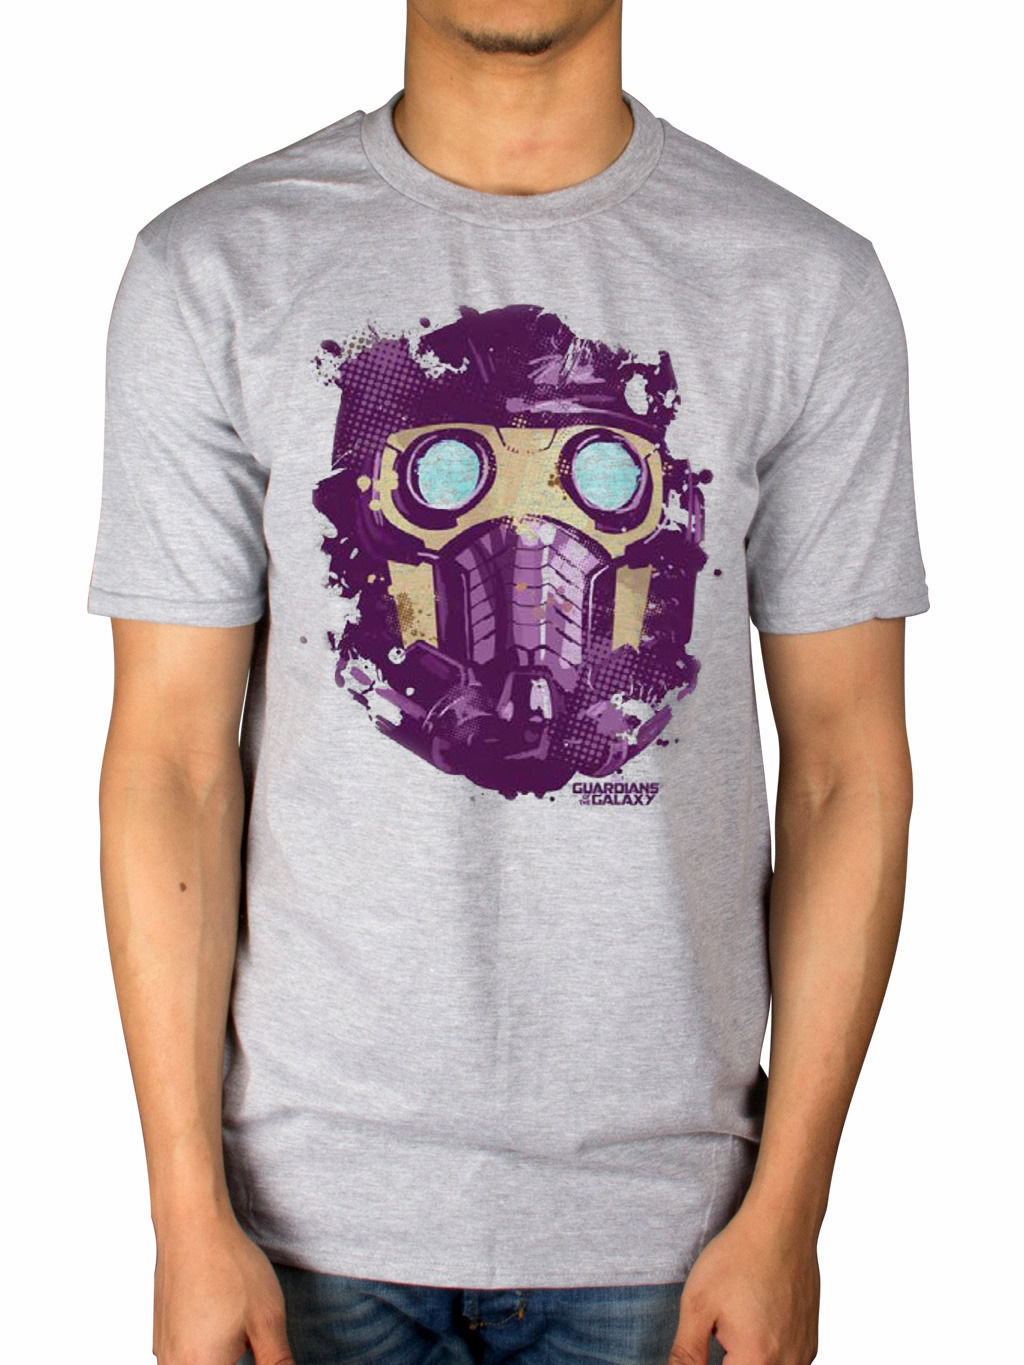 Guardians Of The Galaxy Starlord Mask T-Shirt Avengers Iron Man Movie Cheap Sale 100 % Cotton top tee